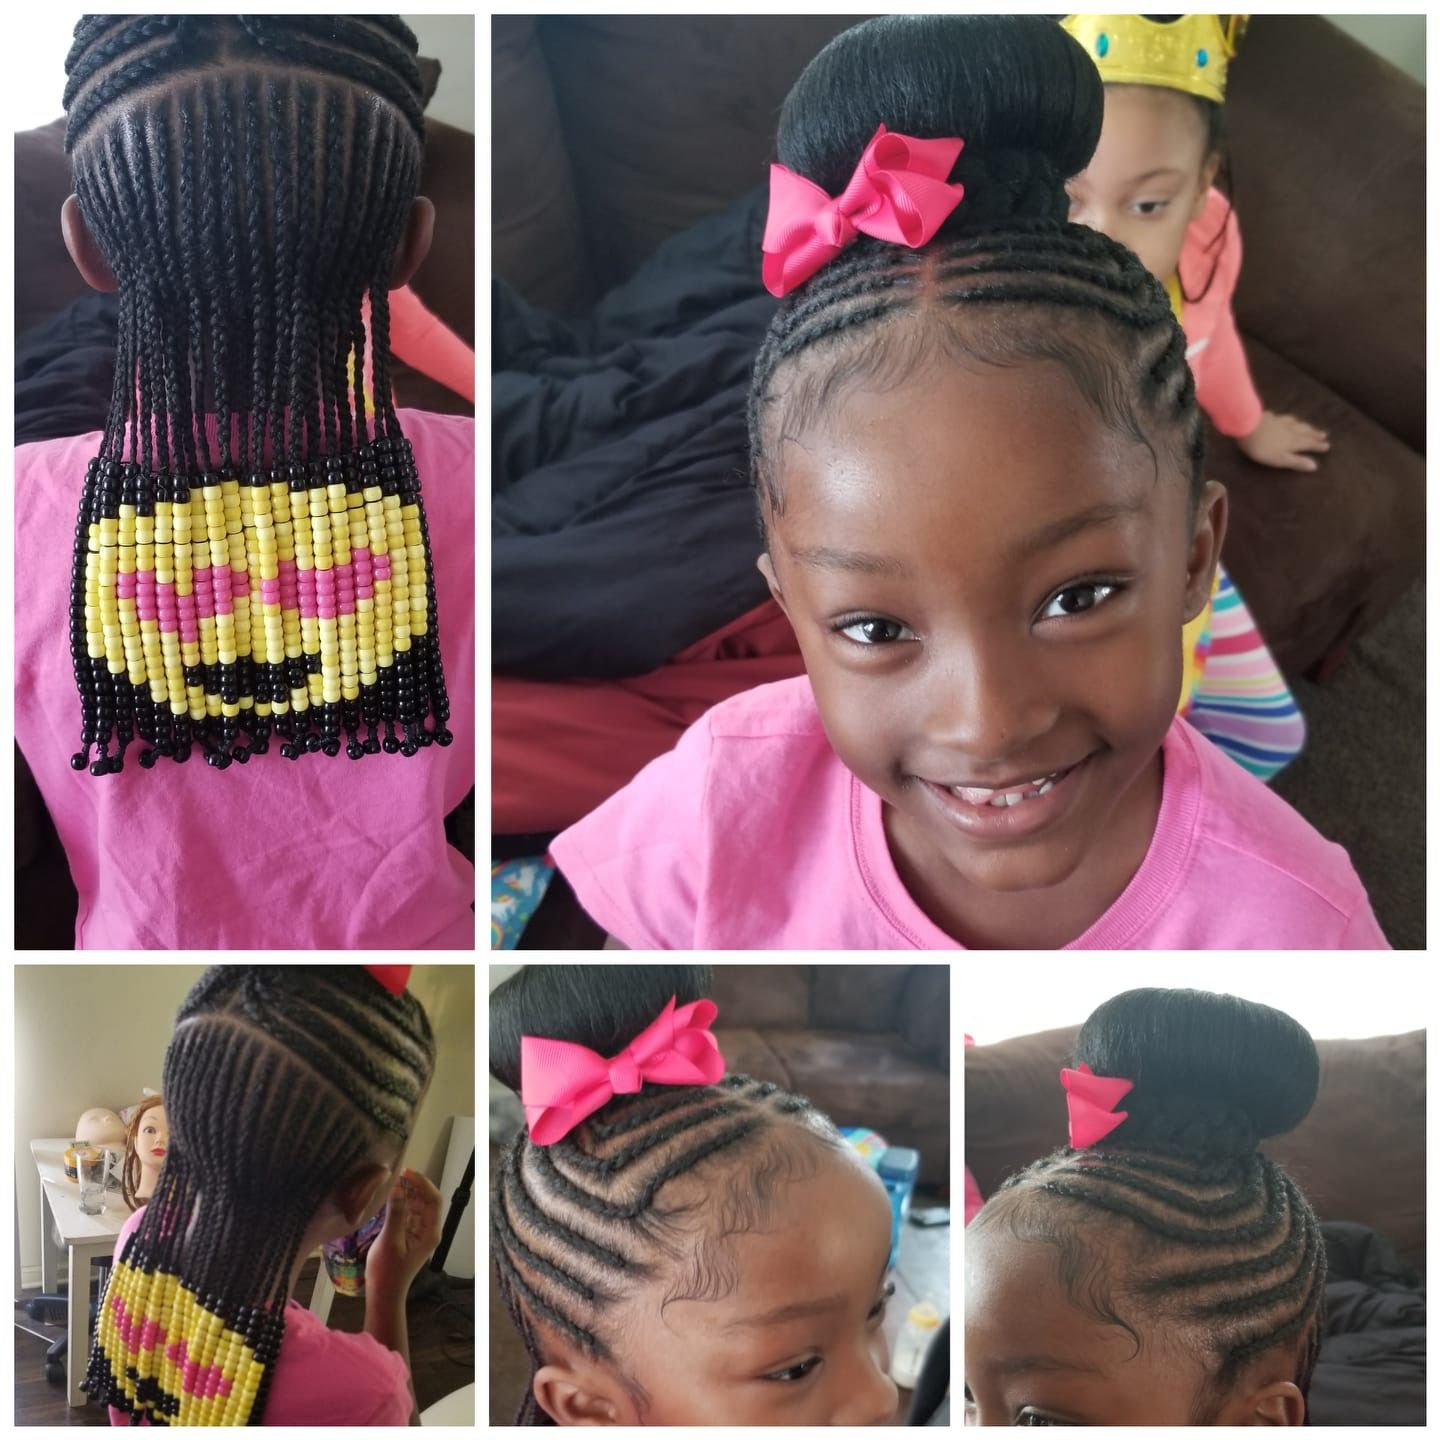 Pin By Valerie Choate On Biracial Hair Braids For Kids Hair Styles Toddler Braided Hairstyles